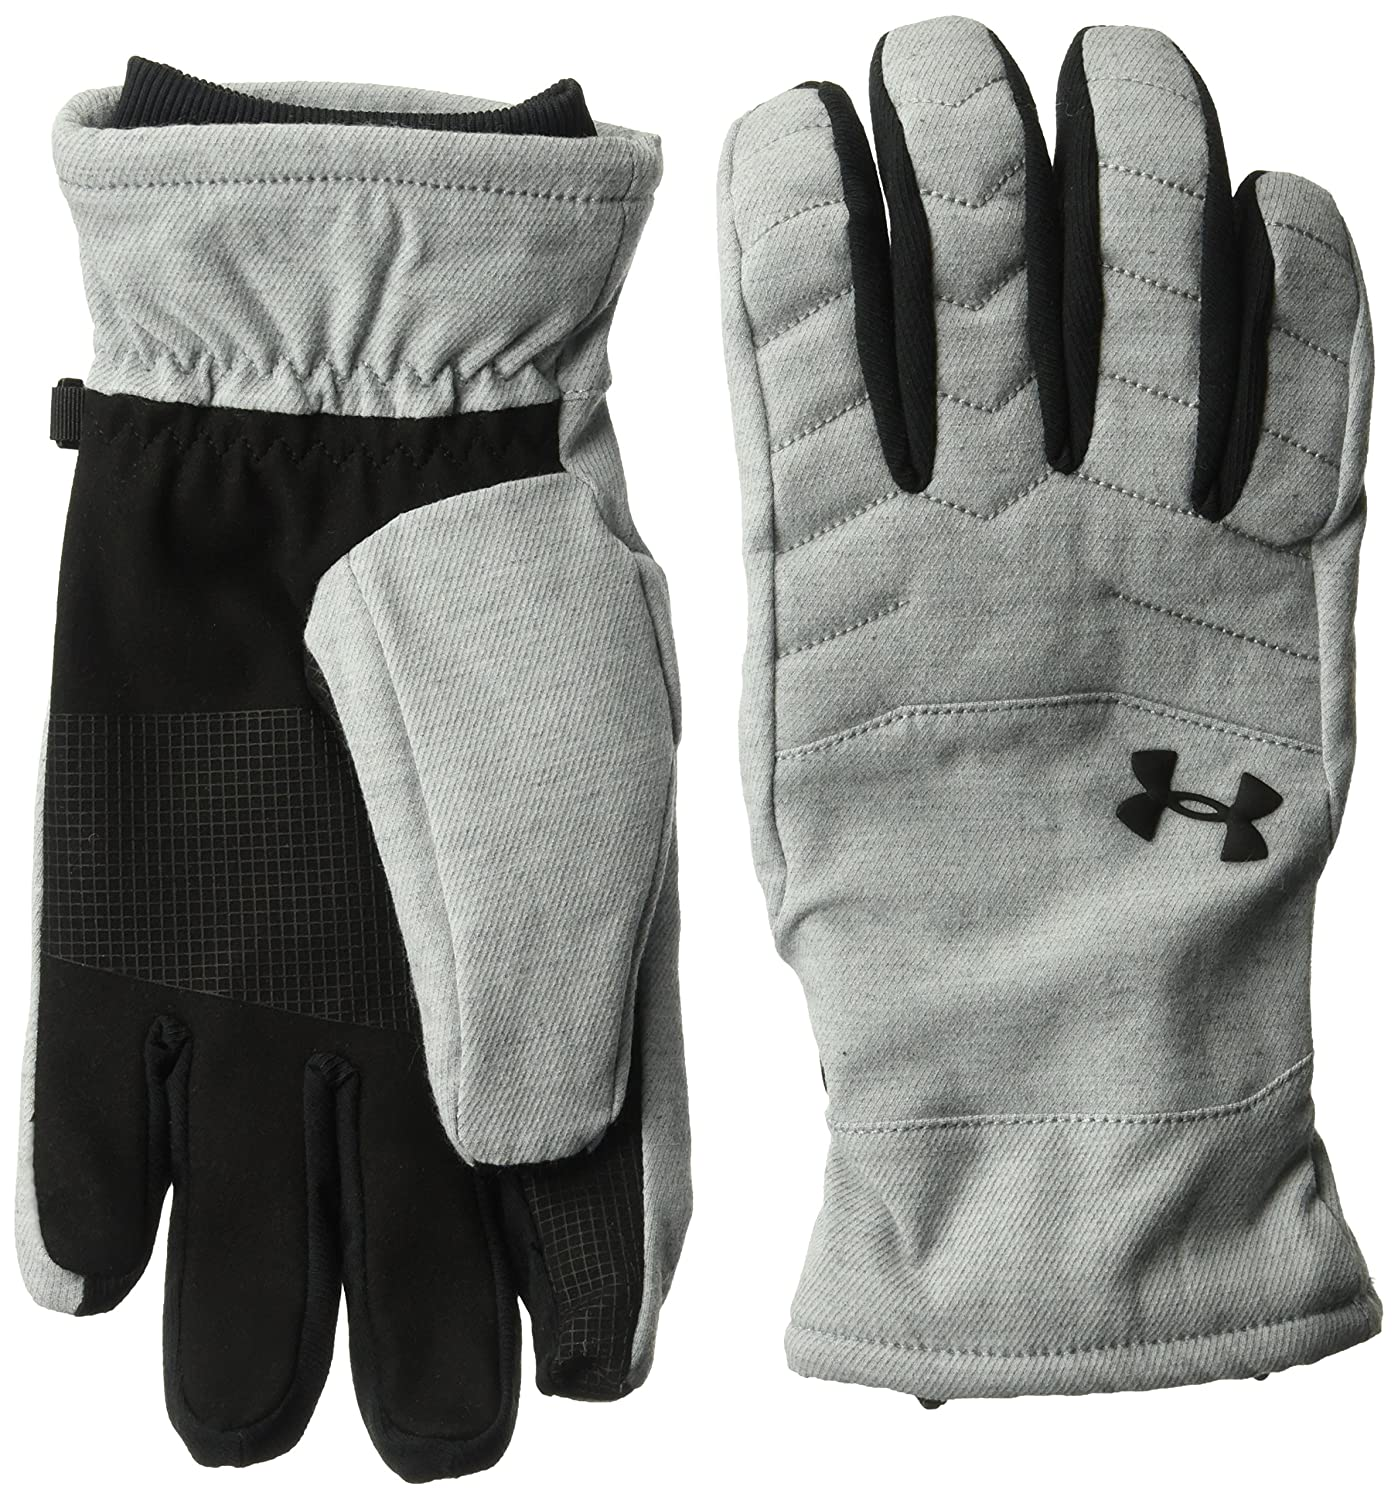 Under Armour Men's Reactor Quilted Gloves Under Armour Accessories 1300085